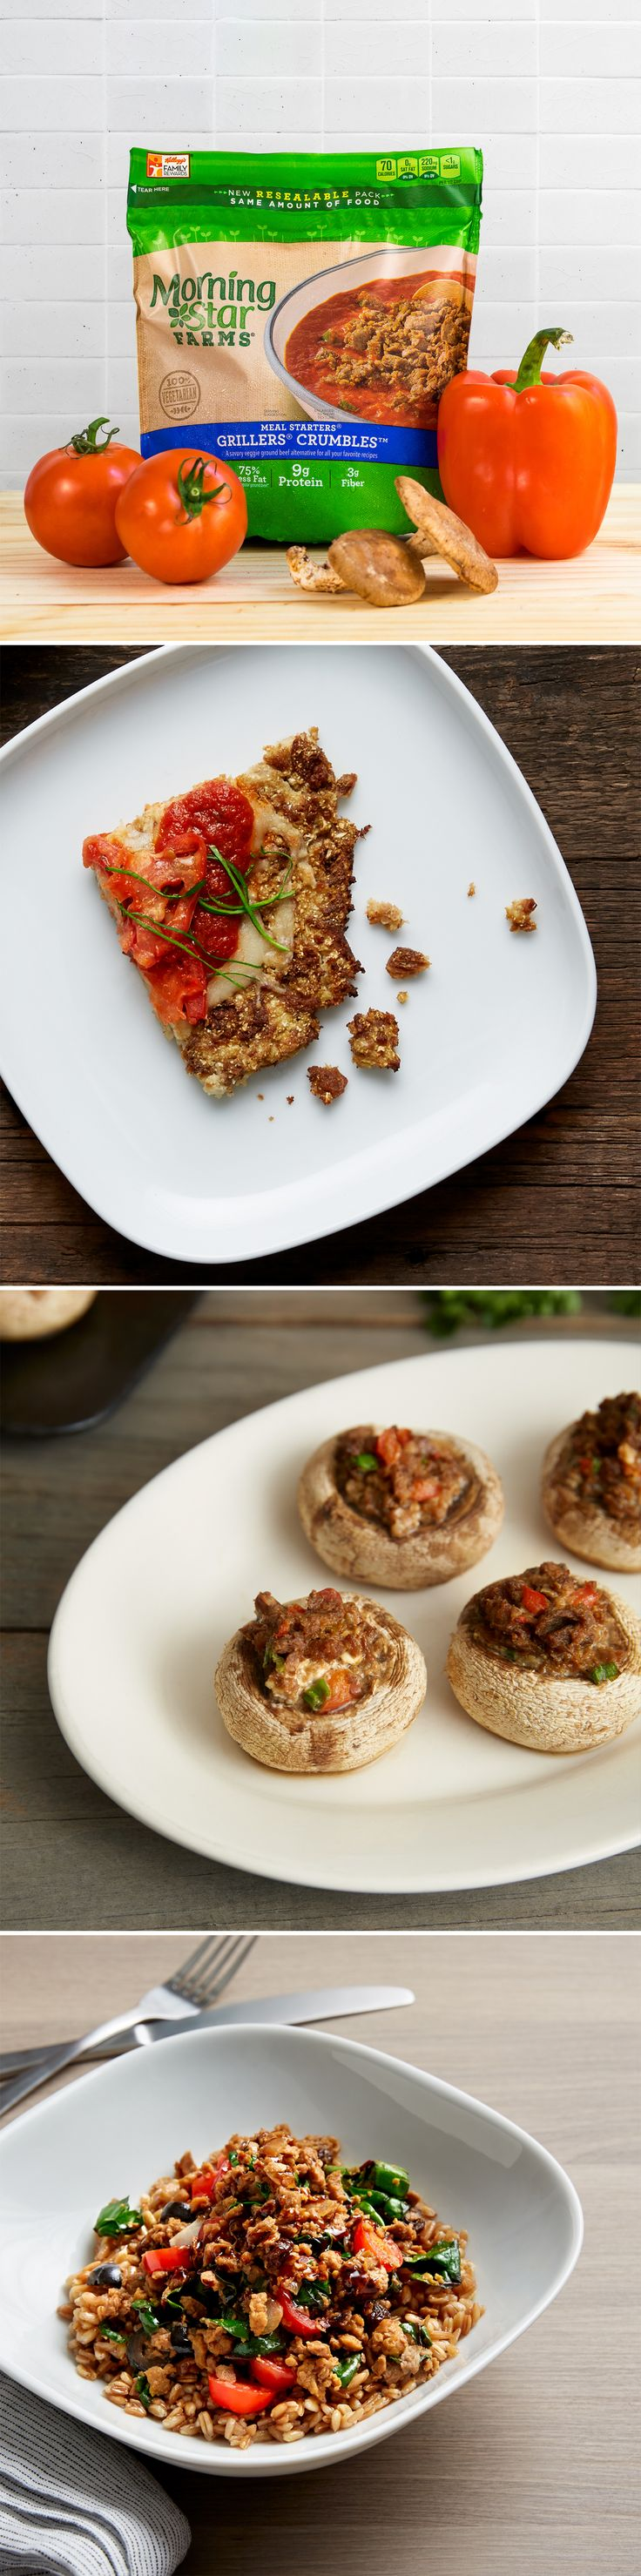 What are you craving for dinner? An easy vegetarian meal that's cheesy, creamy or bright?